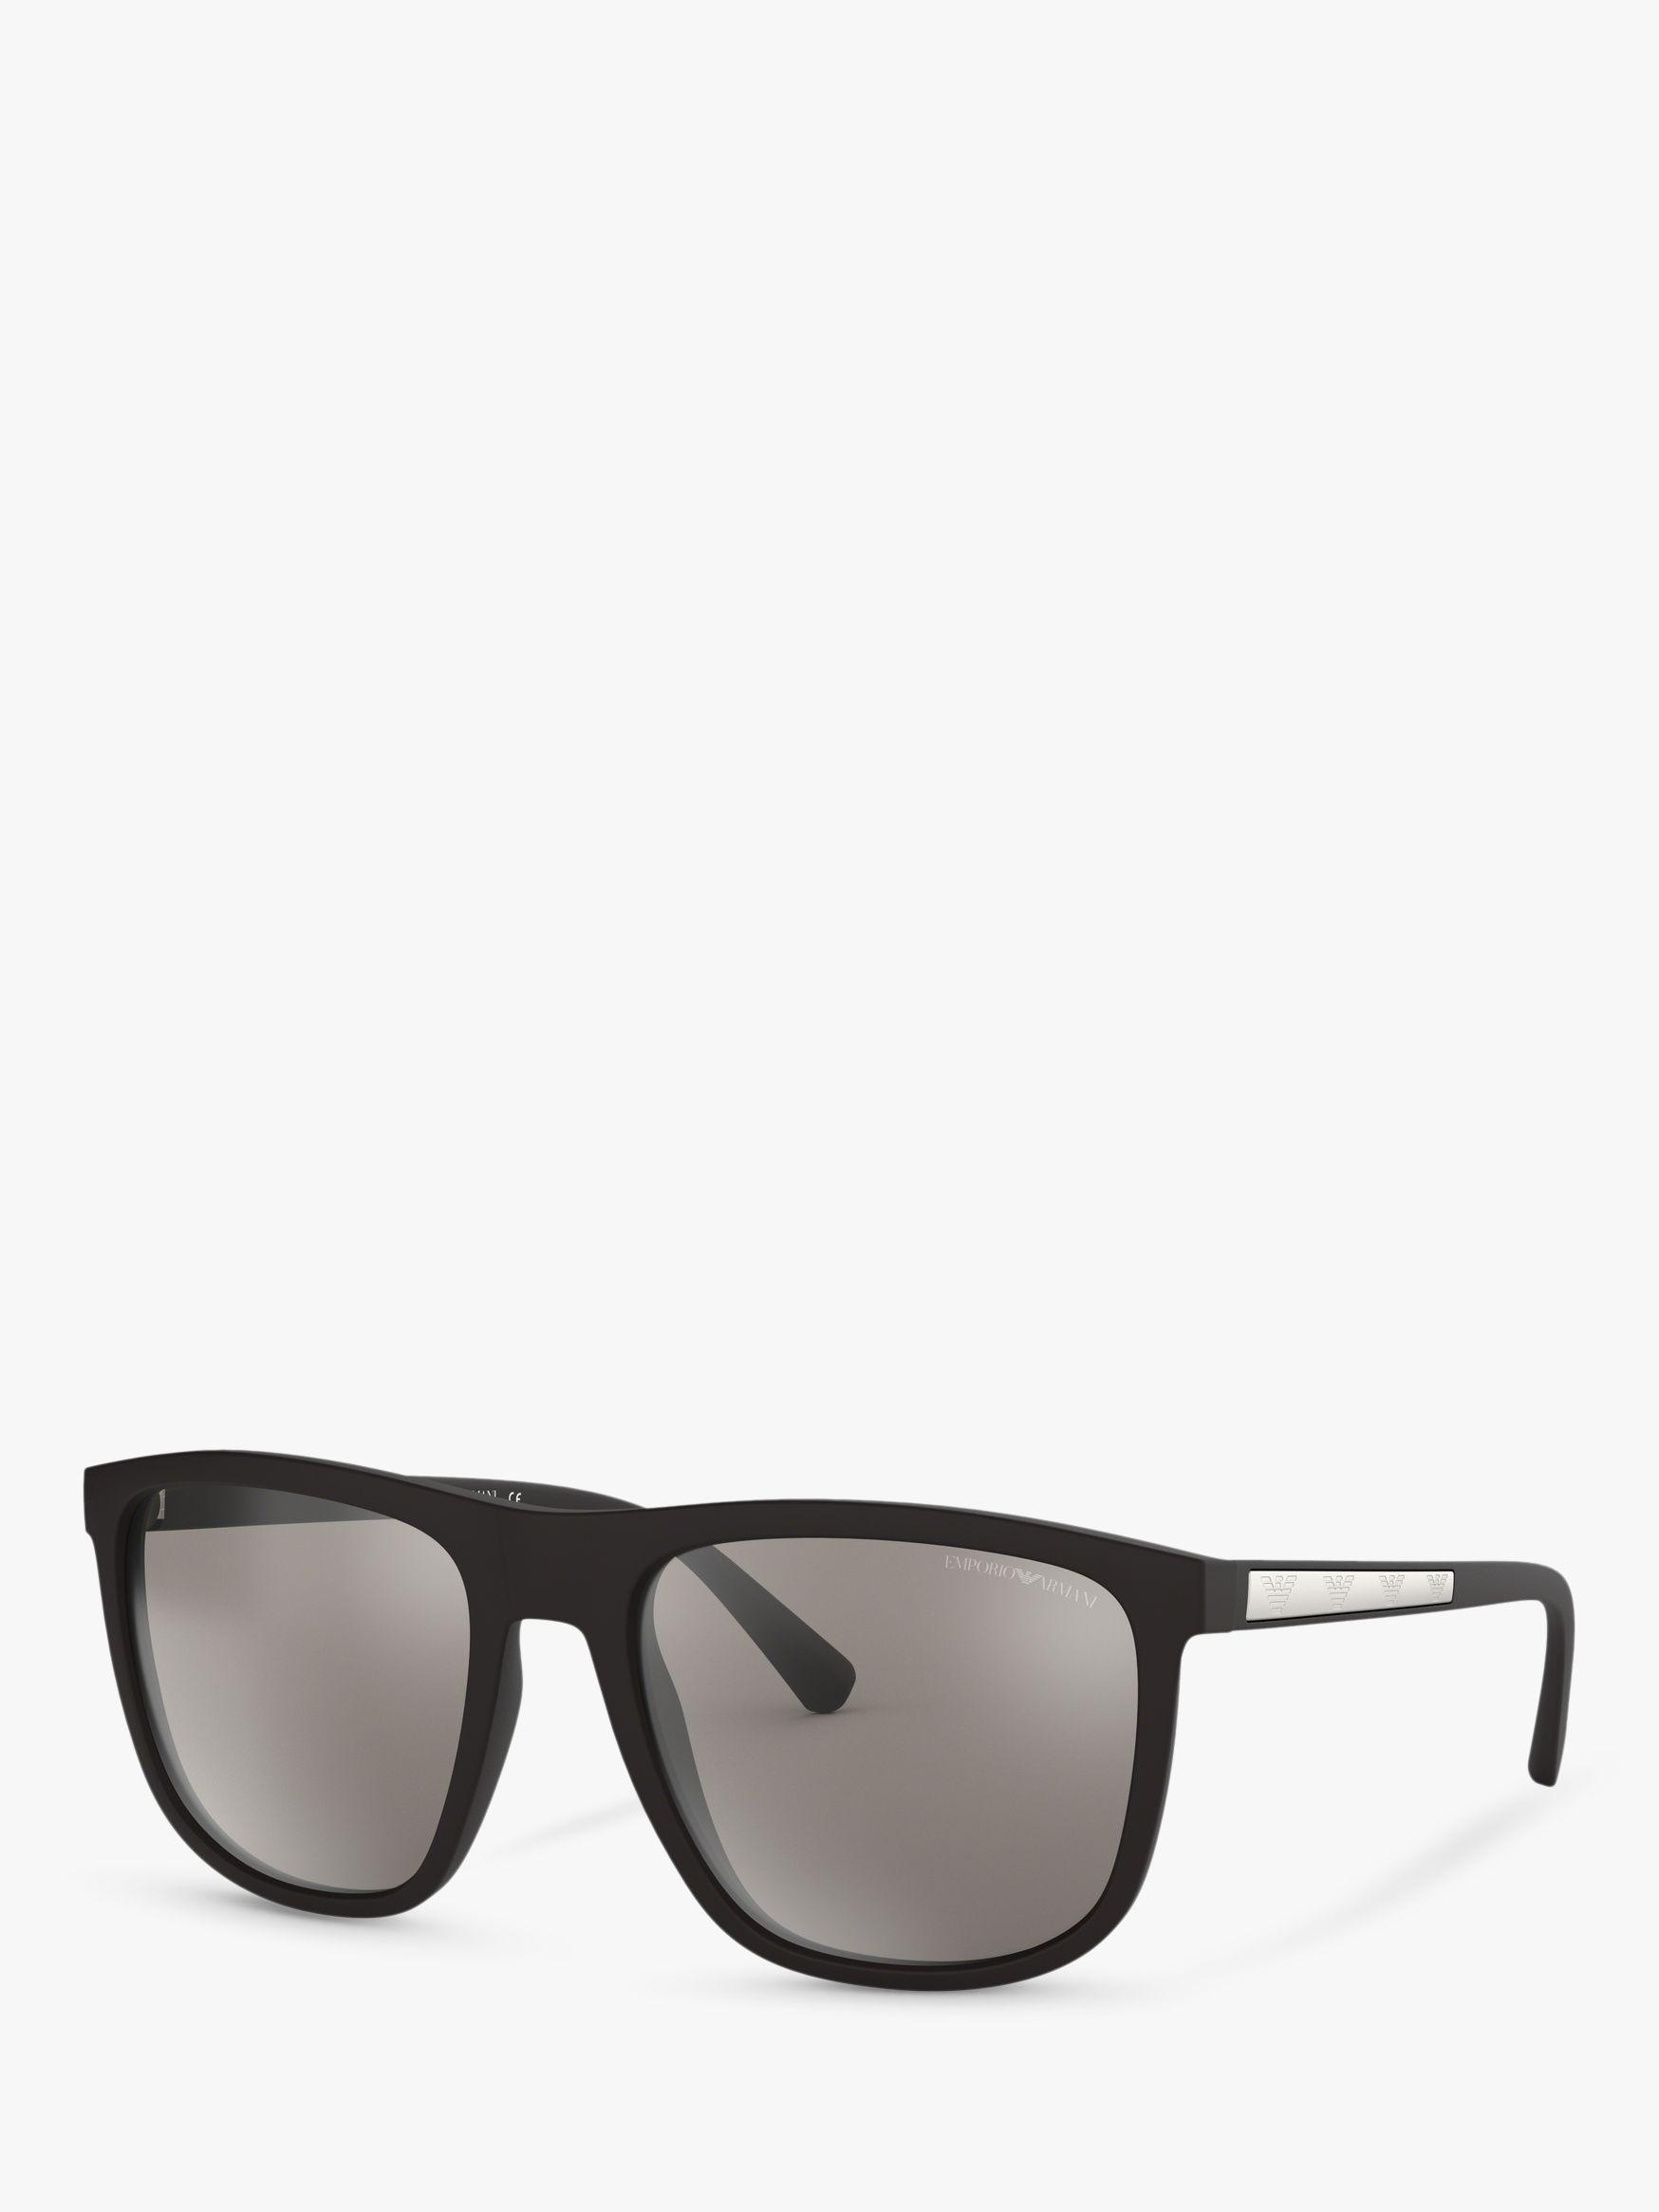 b90b786961fda Emporio Armani Ea4123 Men s Square Sunglasses in Black for Men - Lyst